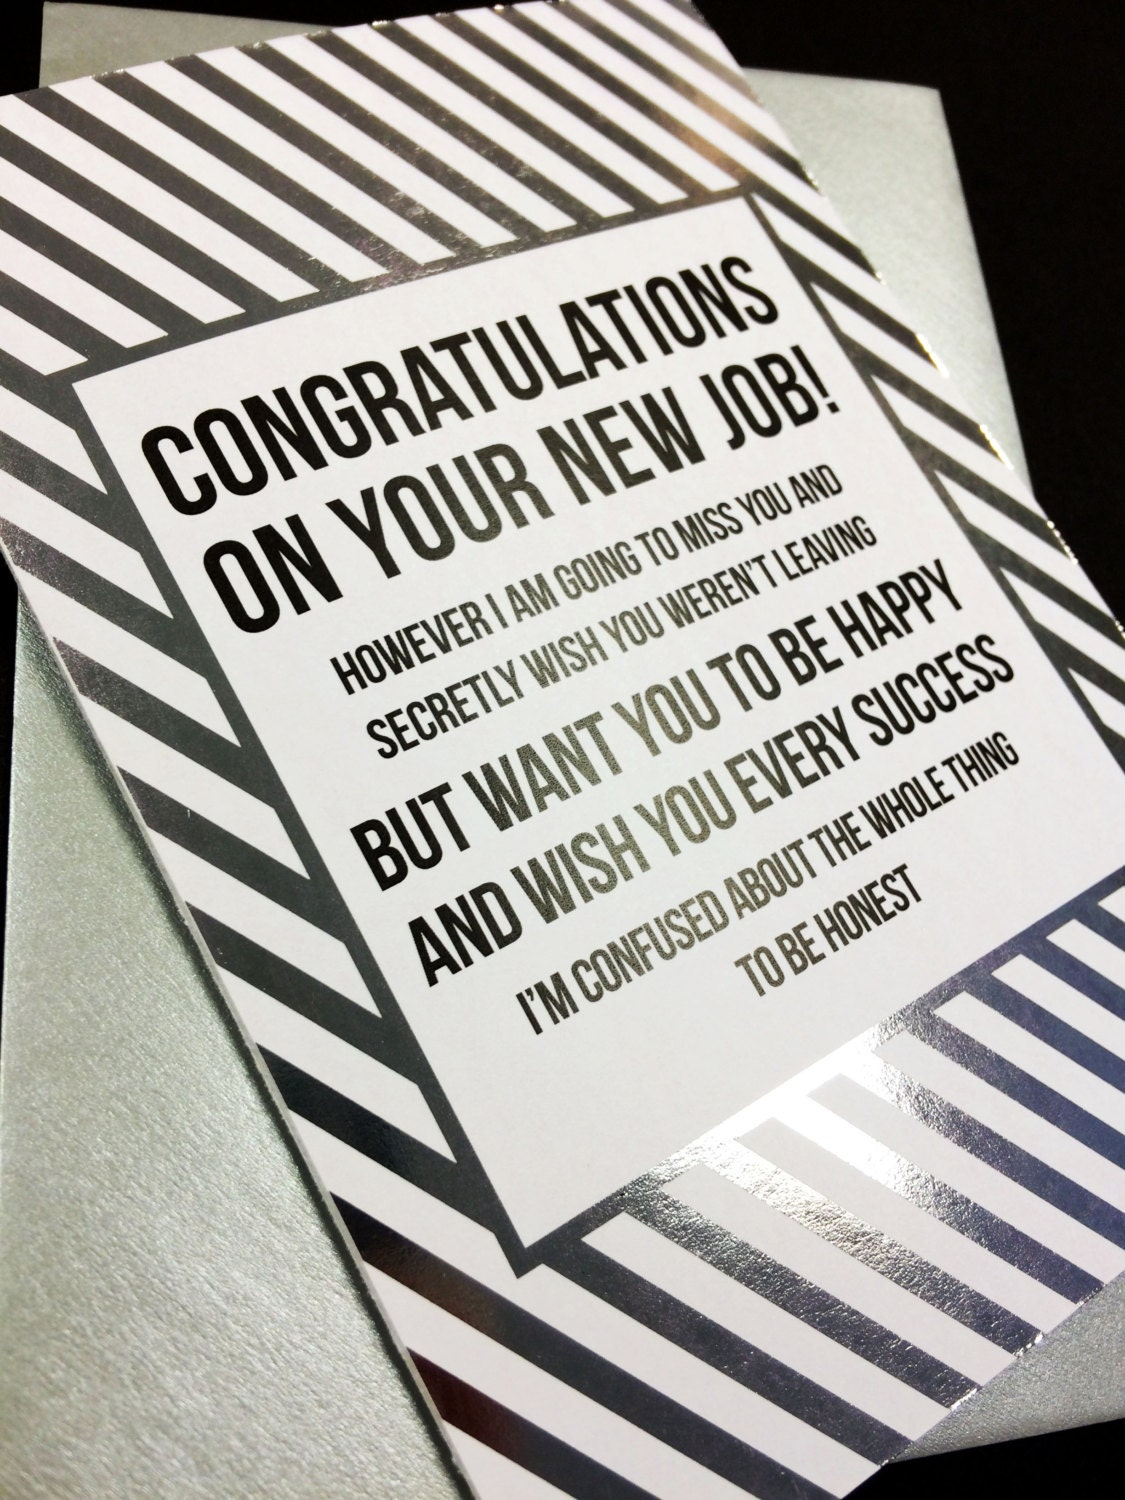 Congratulations on your new job a6 silver foiled greeting request a custom order and have something made just for you kristyandbryce Images